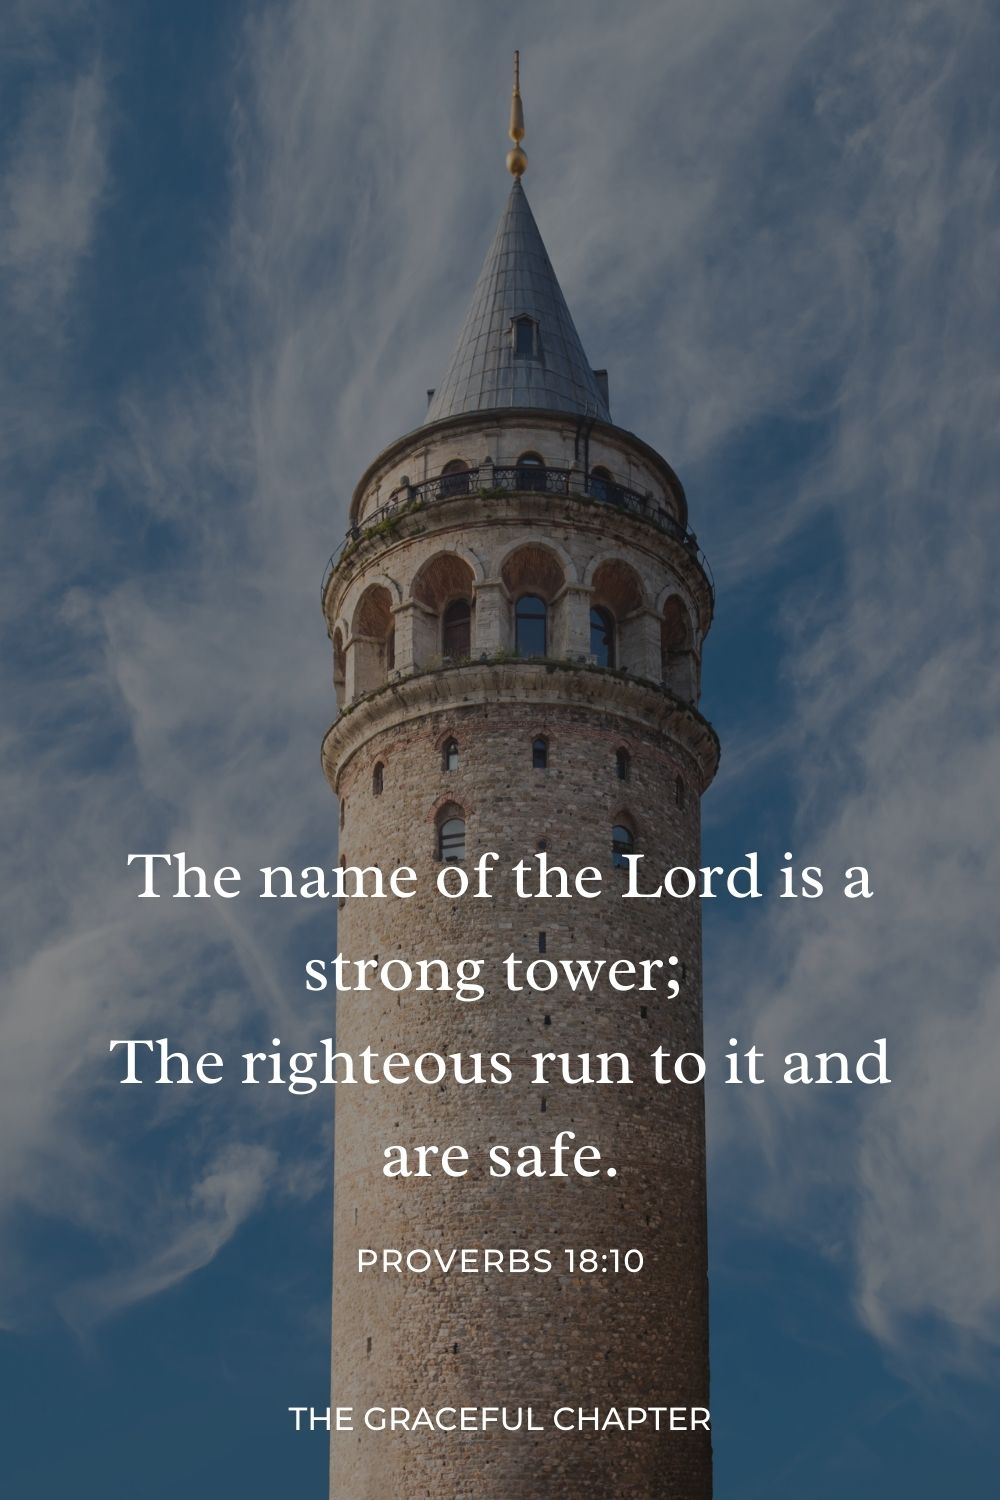 The name of the Lord is a strong tower; The righteous run to it and are safe. Proverbs 18:10